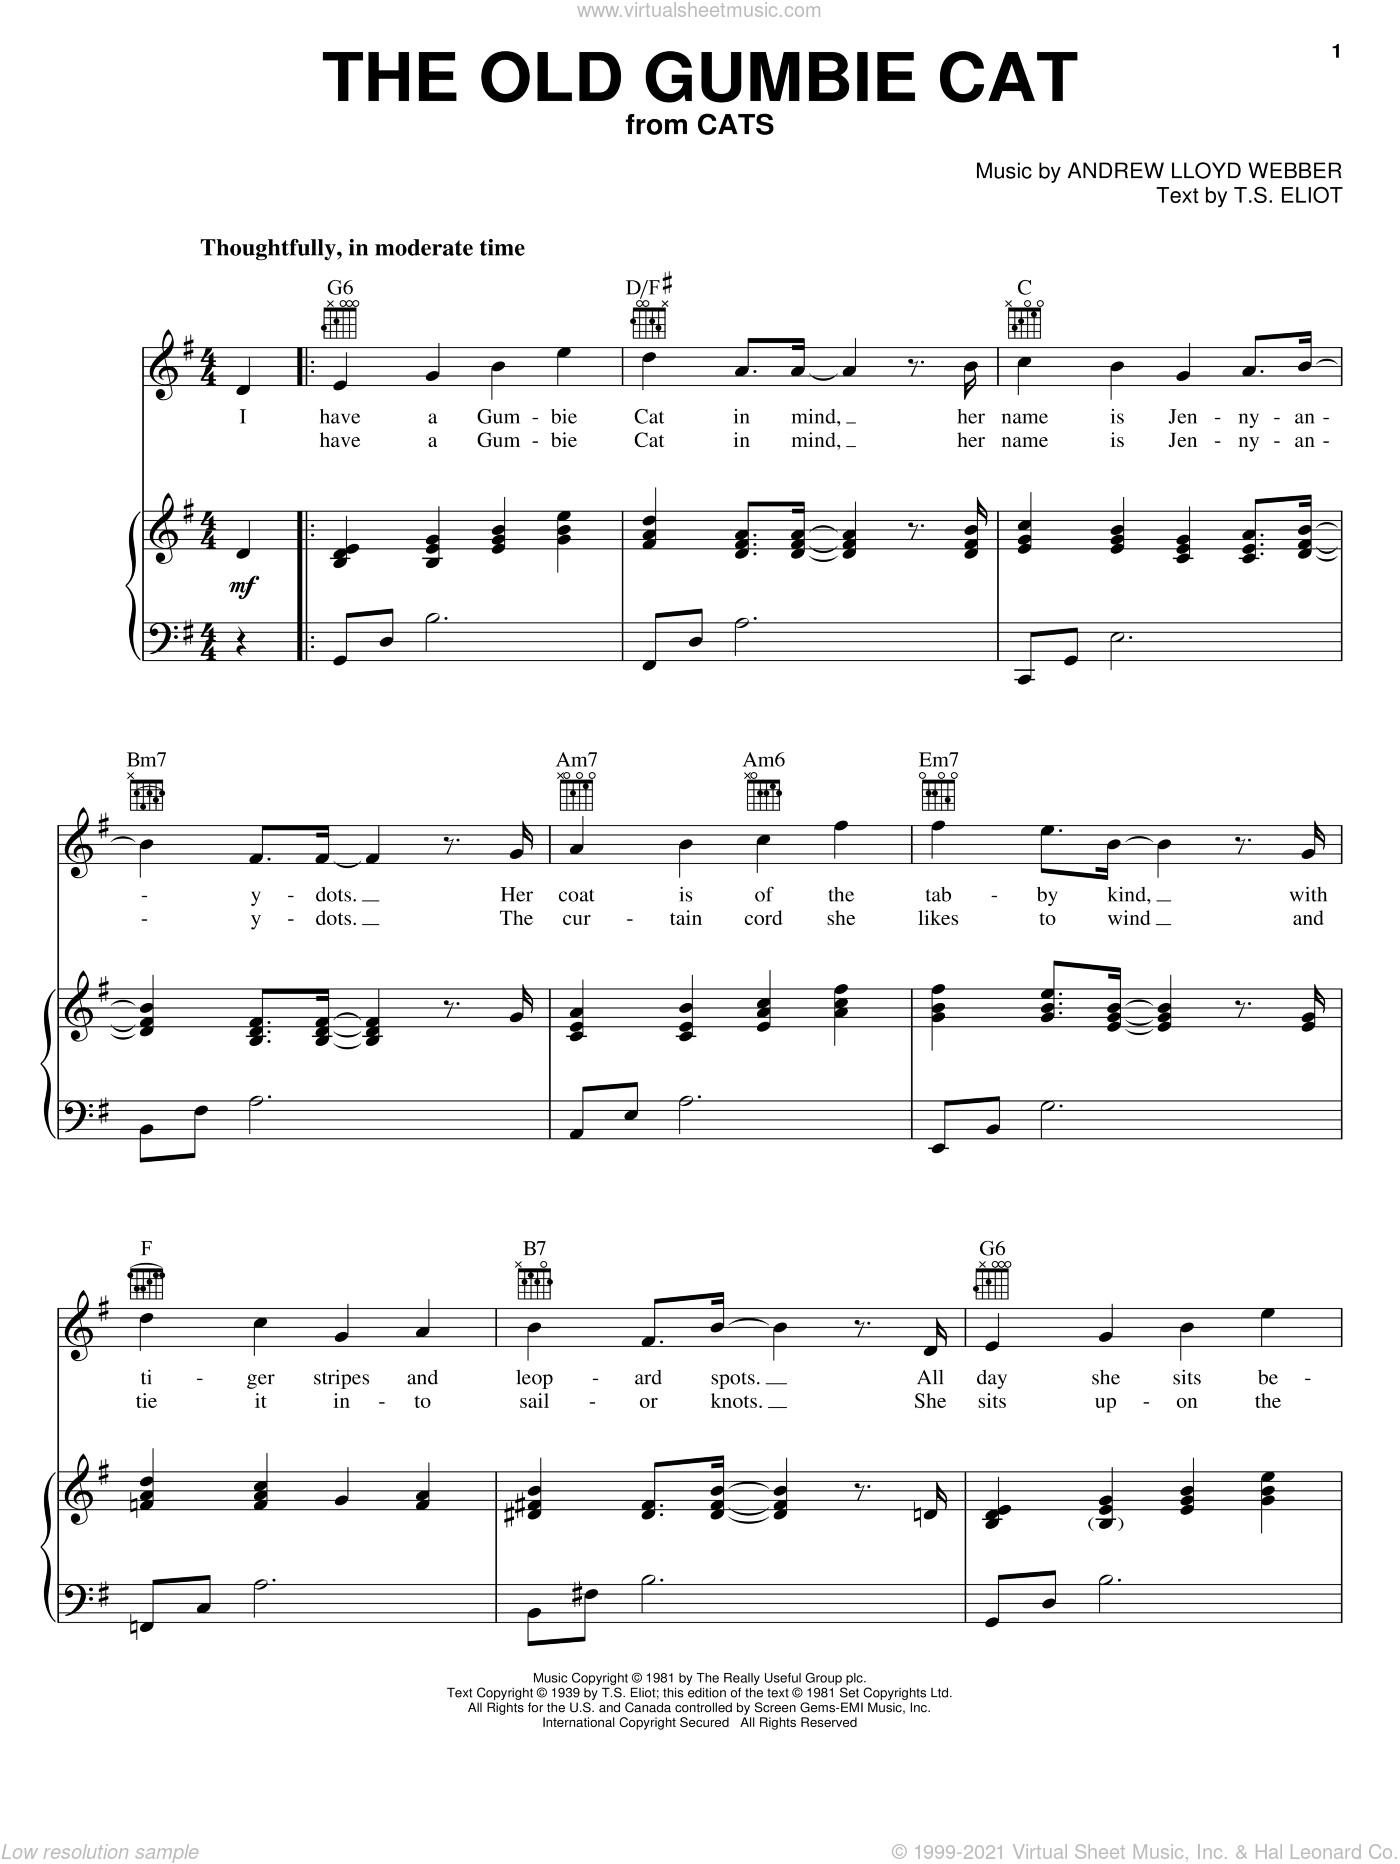 The Old Gumbie Cat (from Cats) sheet music for voice, piano or guitar by Andrew Lloyd Webber, Cats (Musical) and T.S. Eliot, intermediate skill level